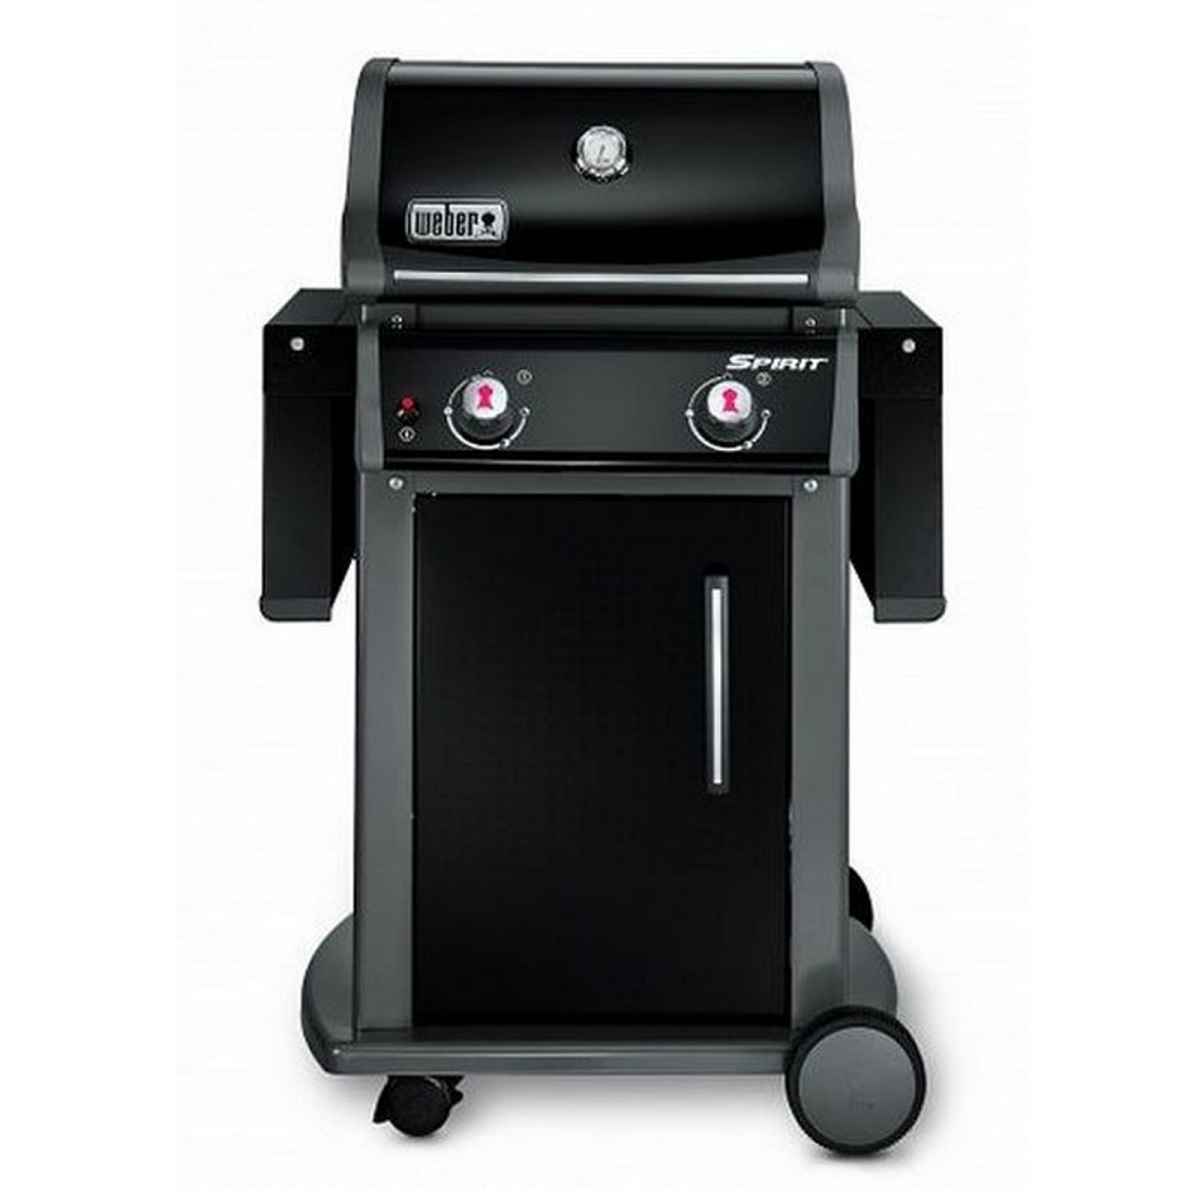 weber spirit e 210 original gas grill. Black Bedroom Furniture Sets. Home Design Ideas